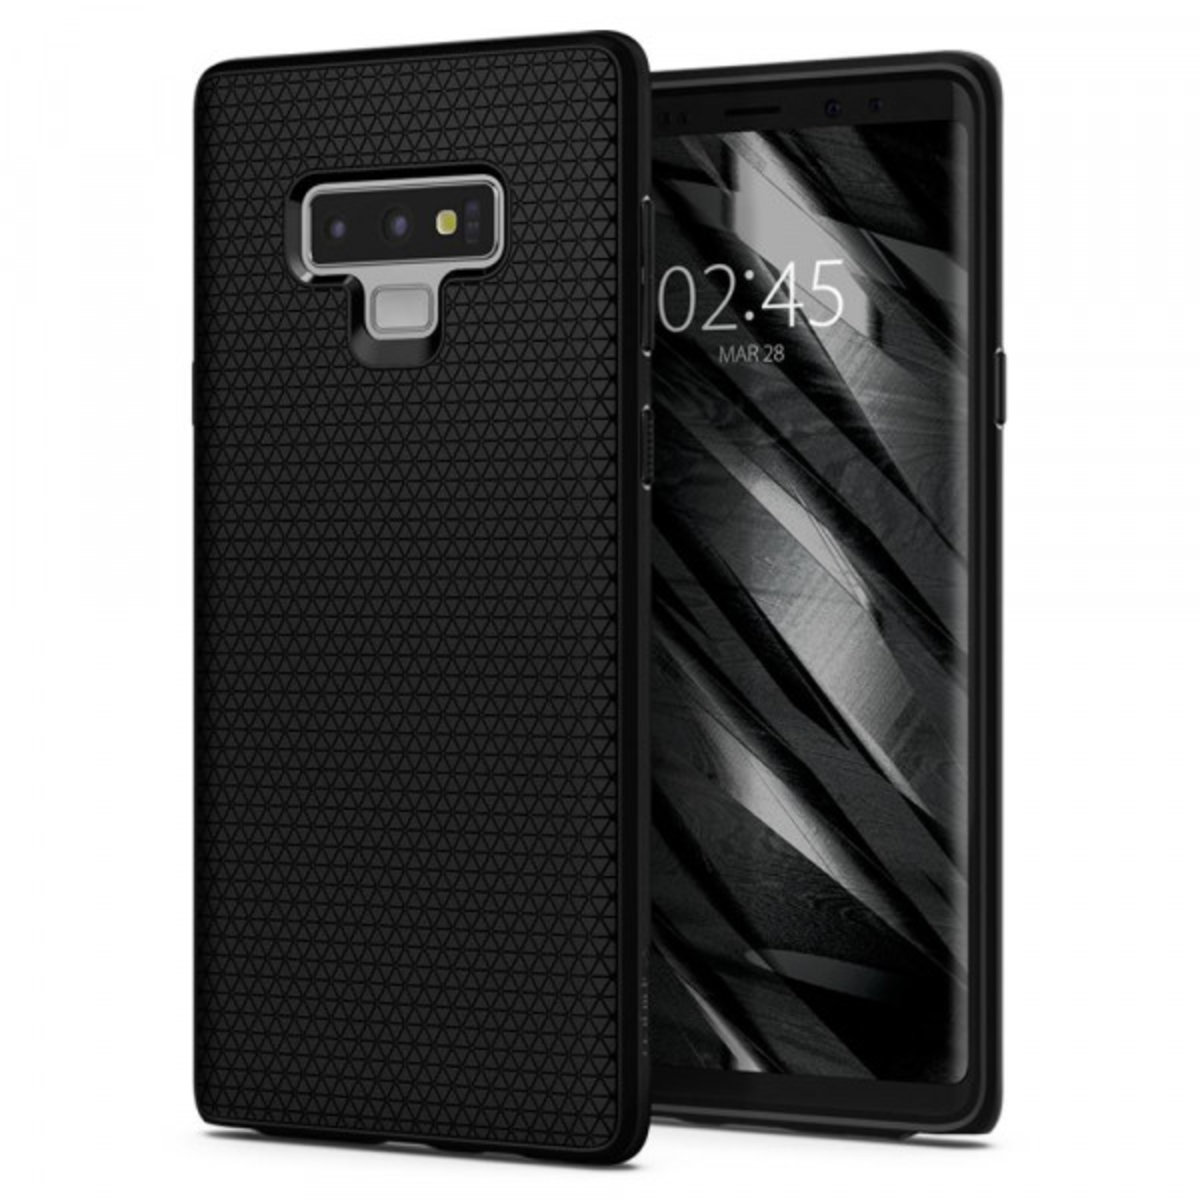 Galaxy Note 9 Case Liquid Air - Matte Black